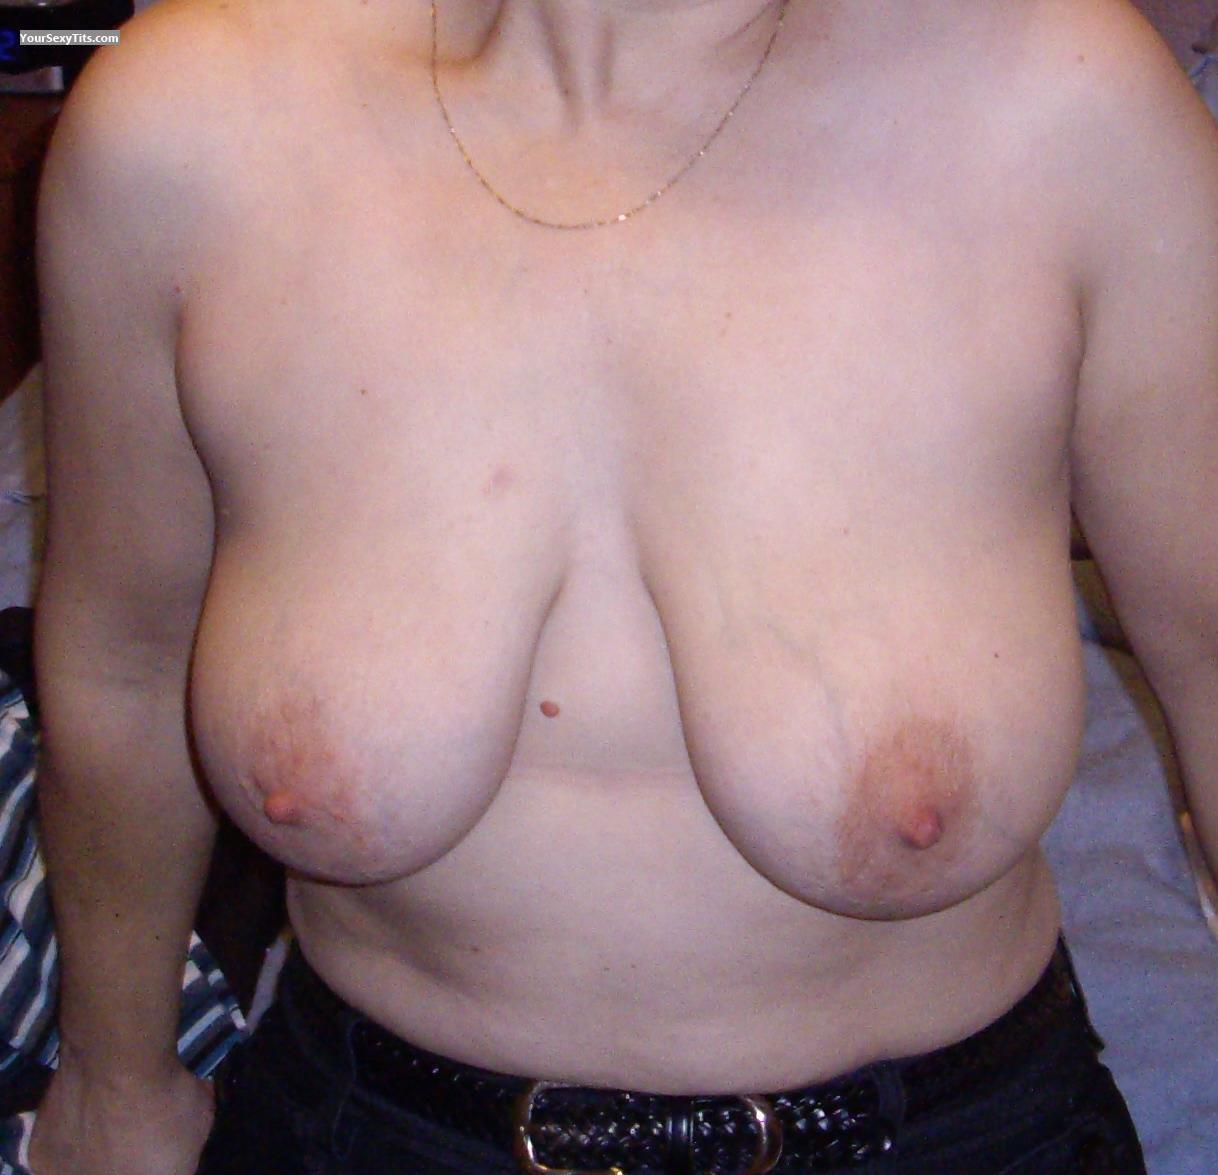 Tit Flash: Medium Tits - Sally from Canada